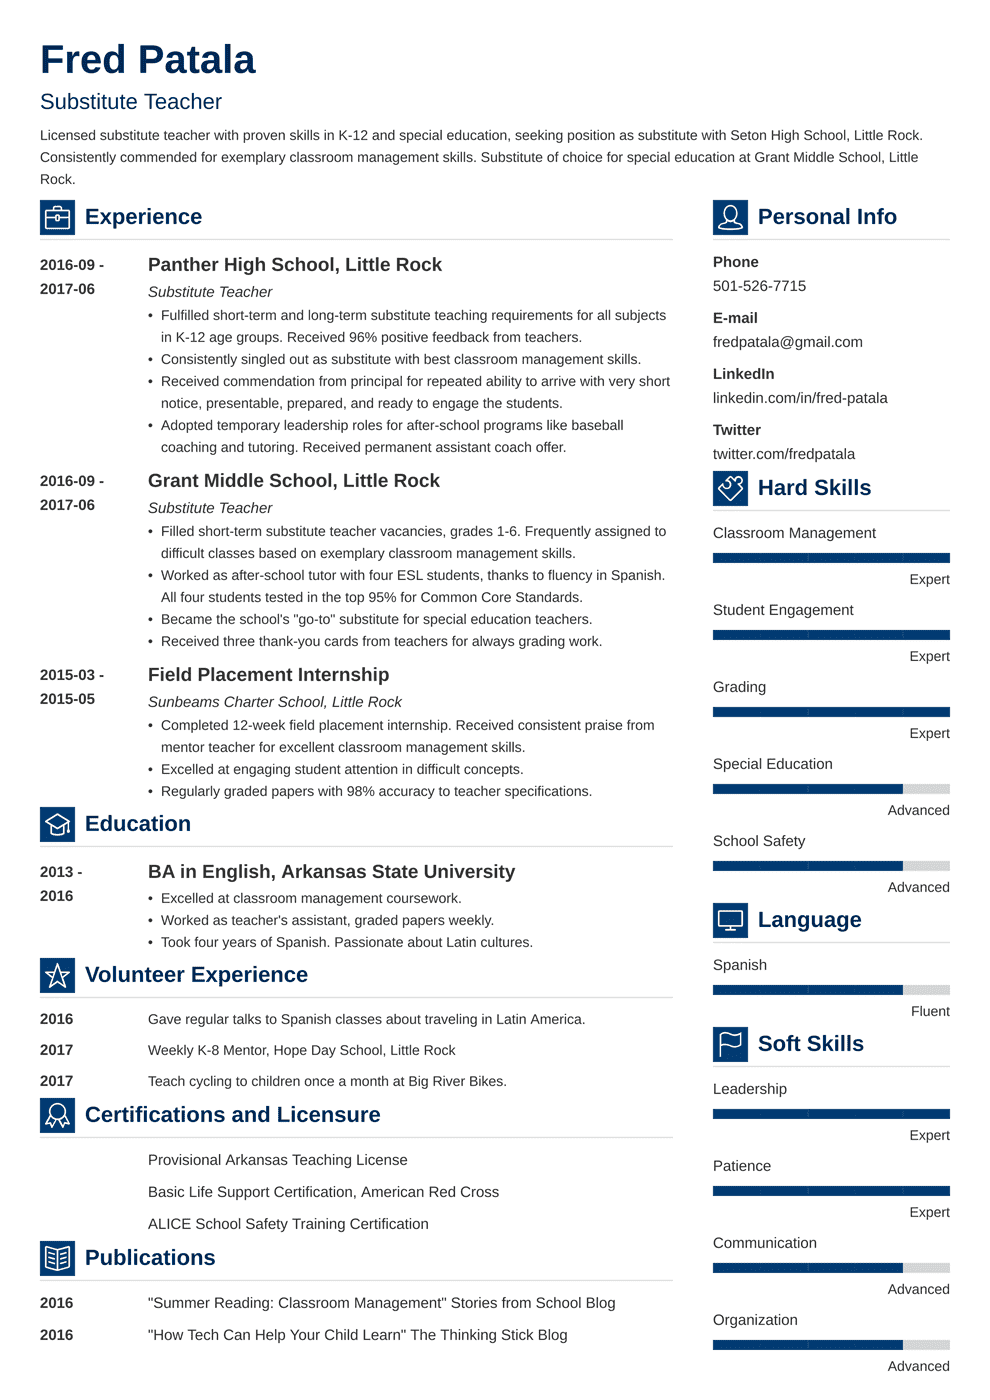 Substitute Teacher Resume: Guide with a Sample [+20 Examples]